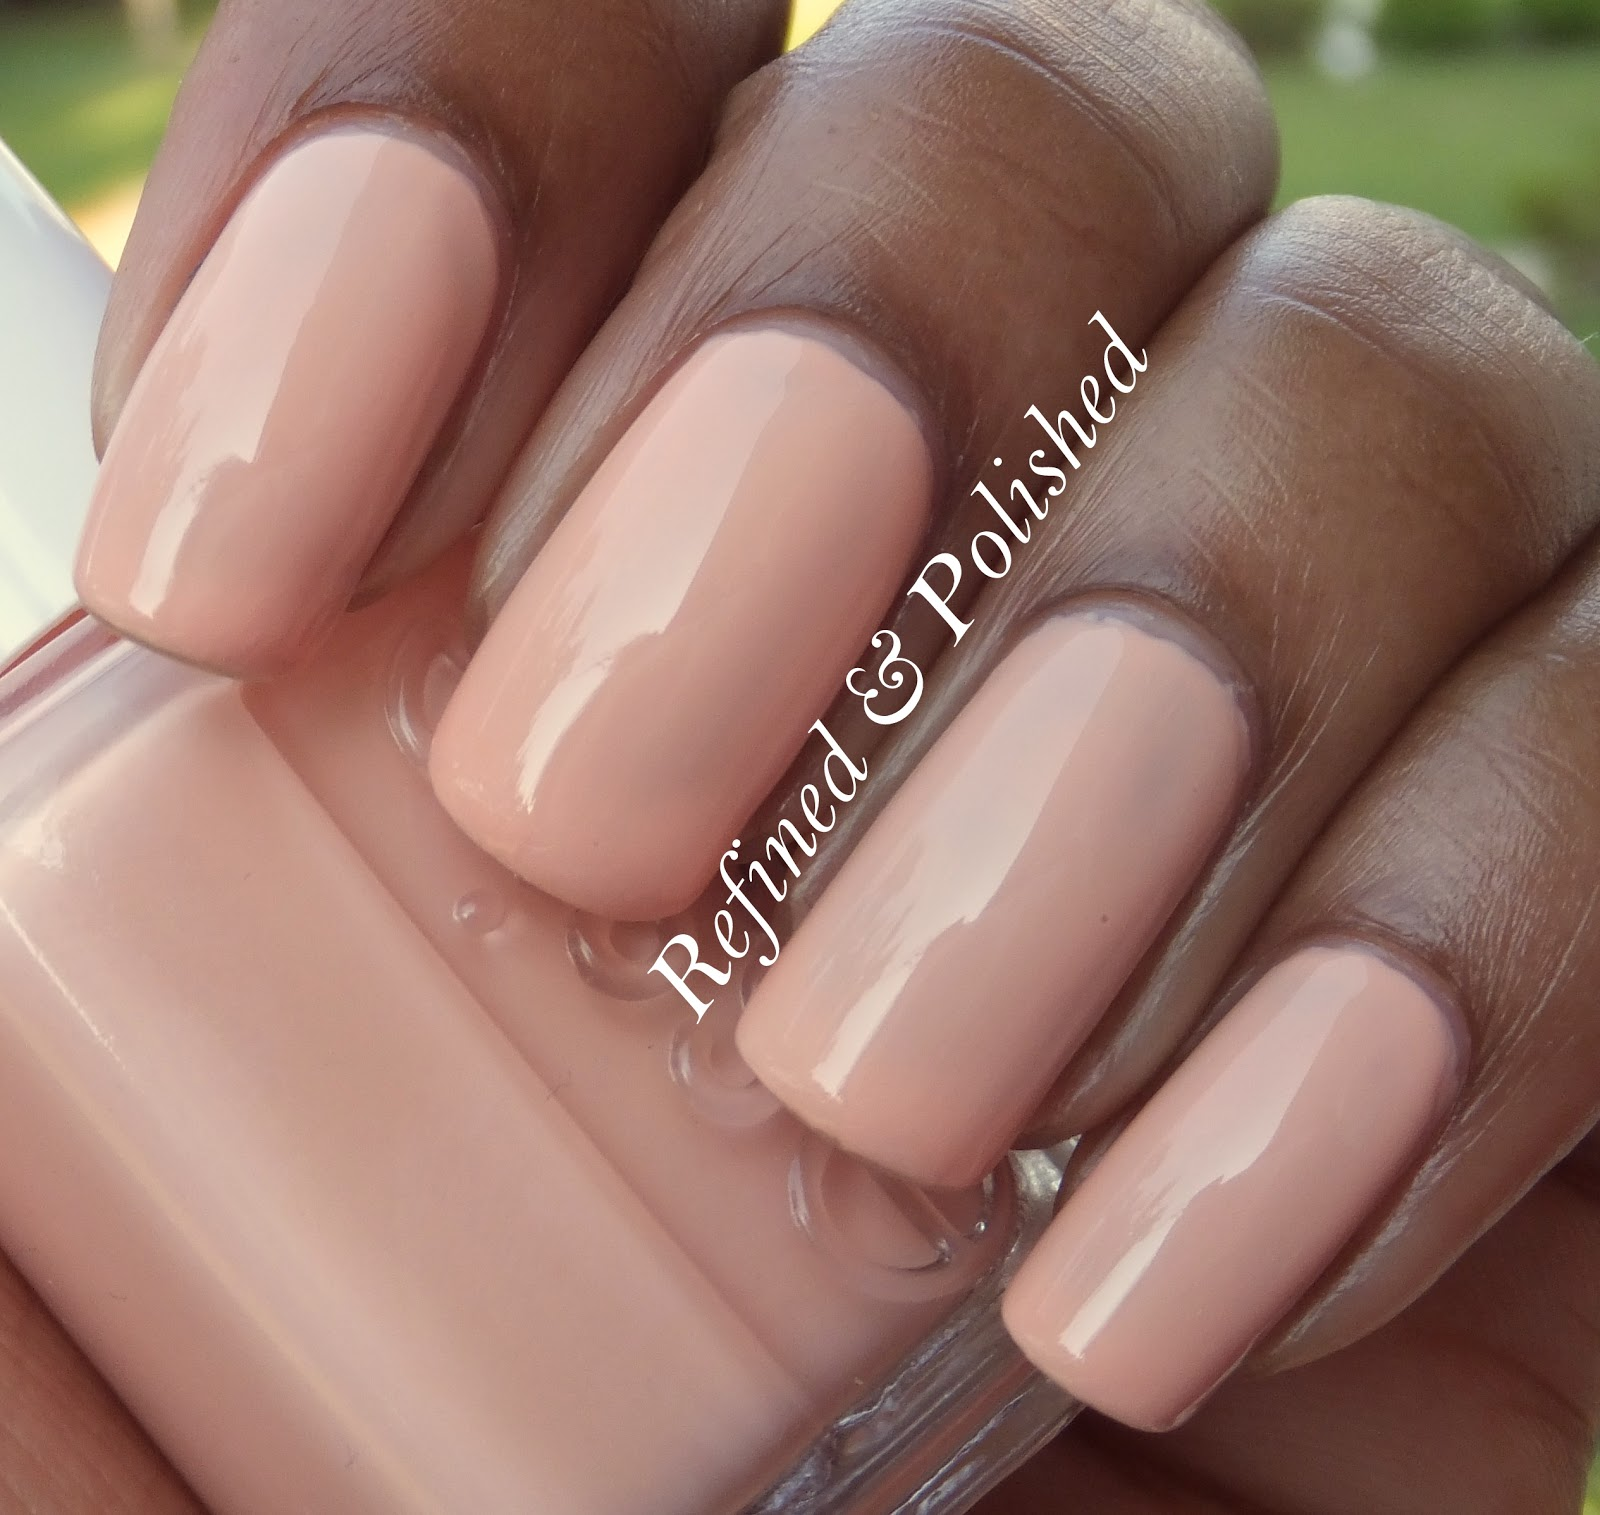 Essie A Crewed Interest - Refined and Polished A Crewed Interest Essie